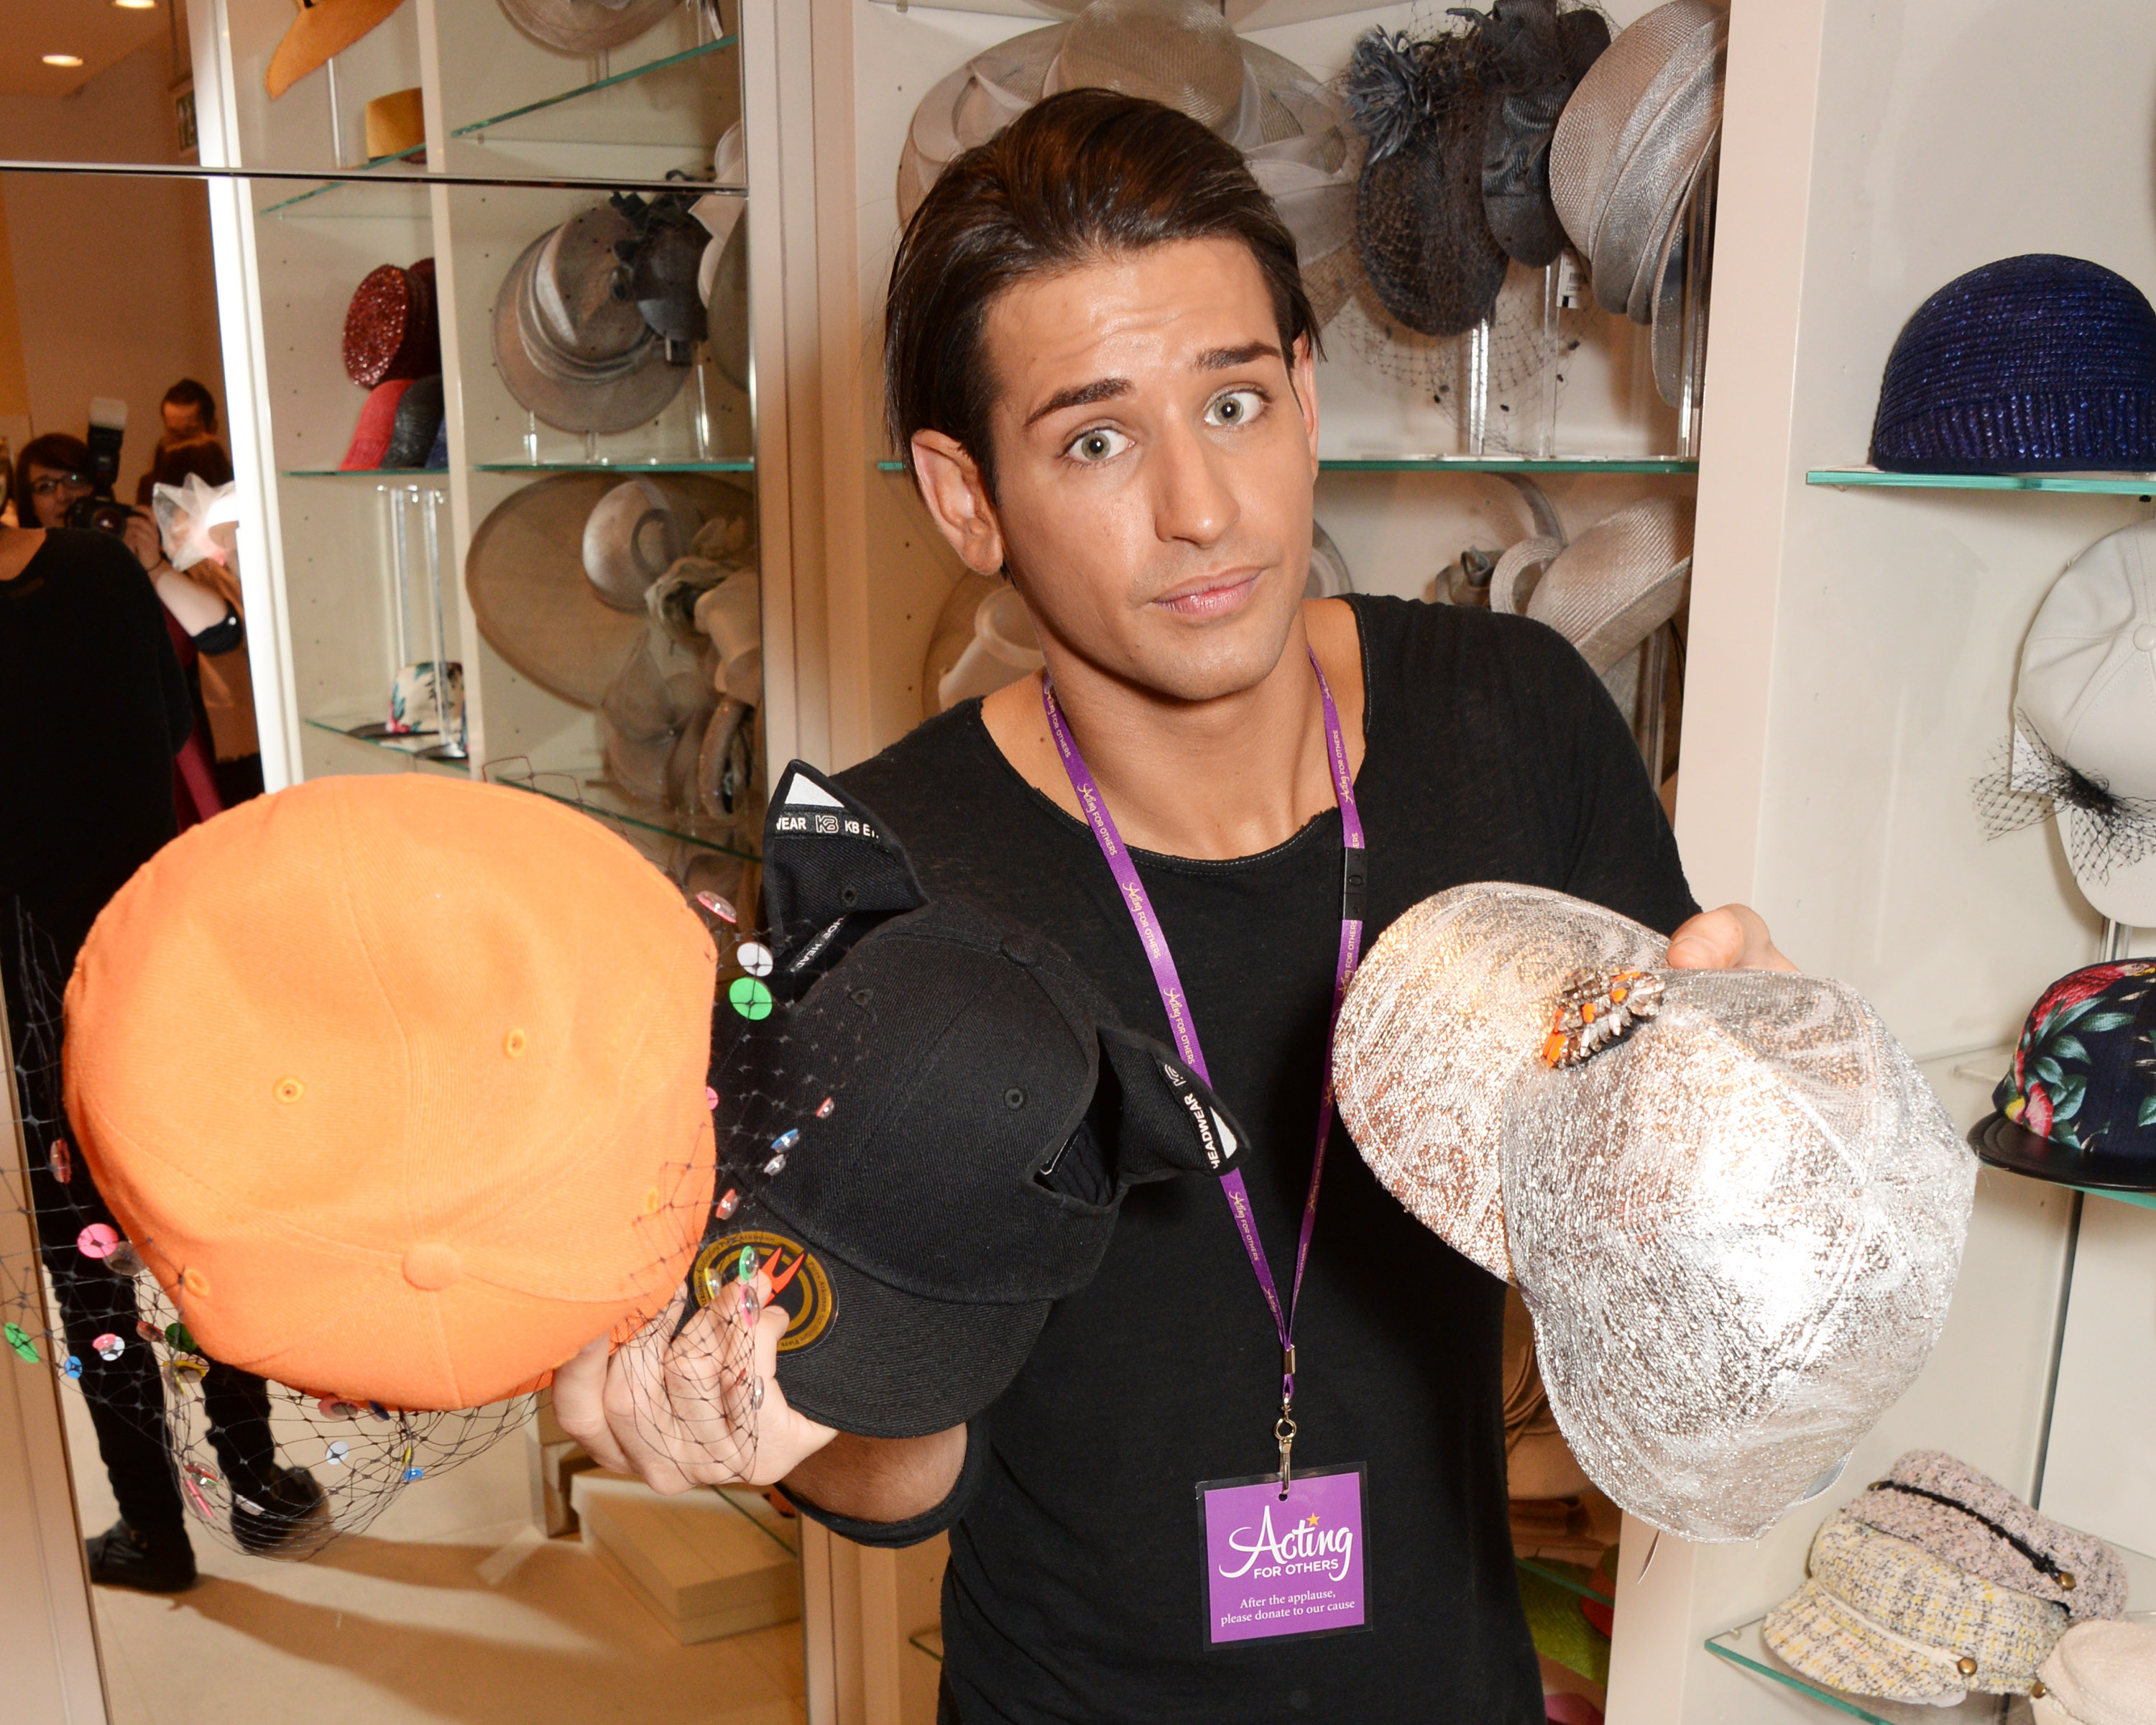 Made In Chelsea star Ollie Locke has come out as gay